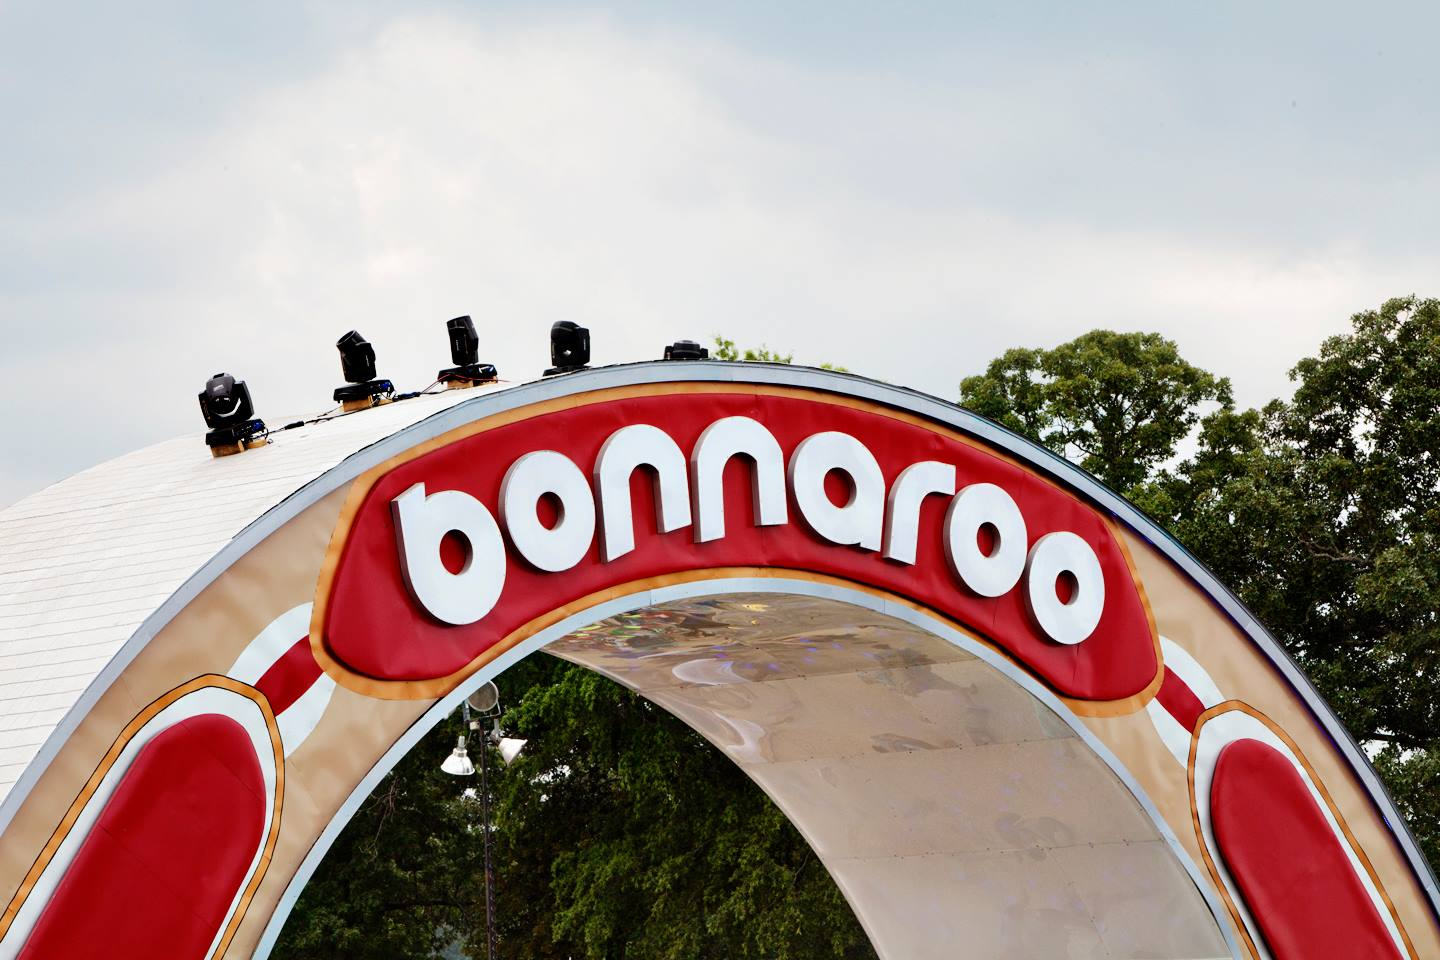 Bonnaroo 2013 | Review & Photos